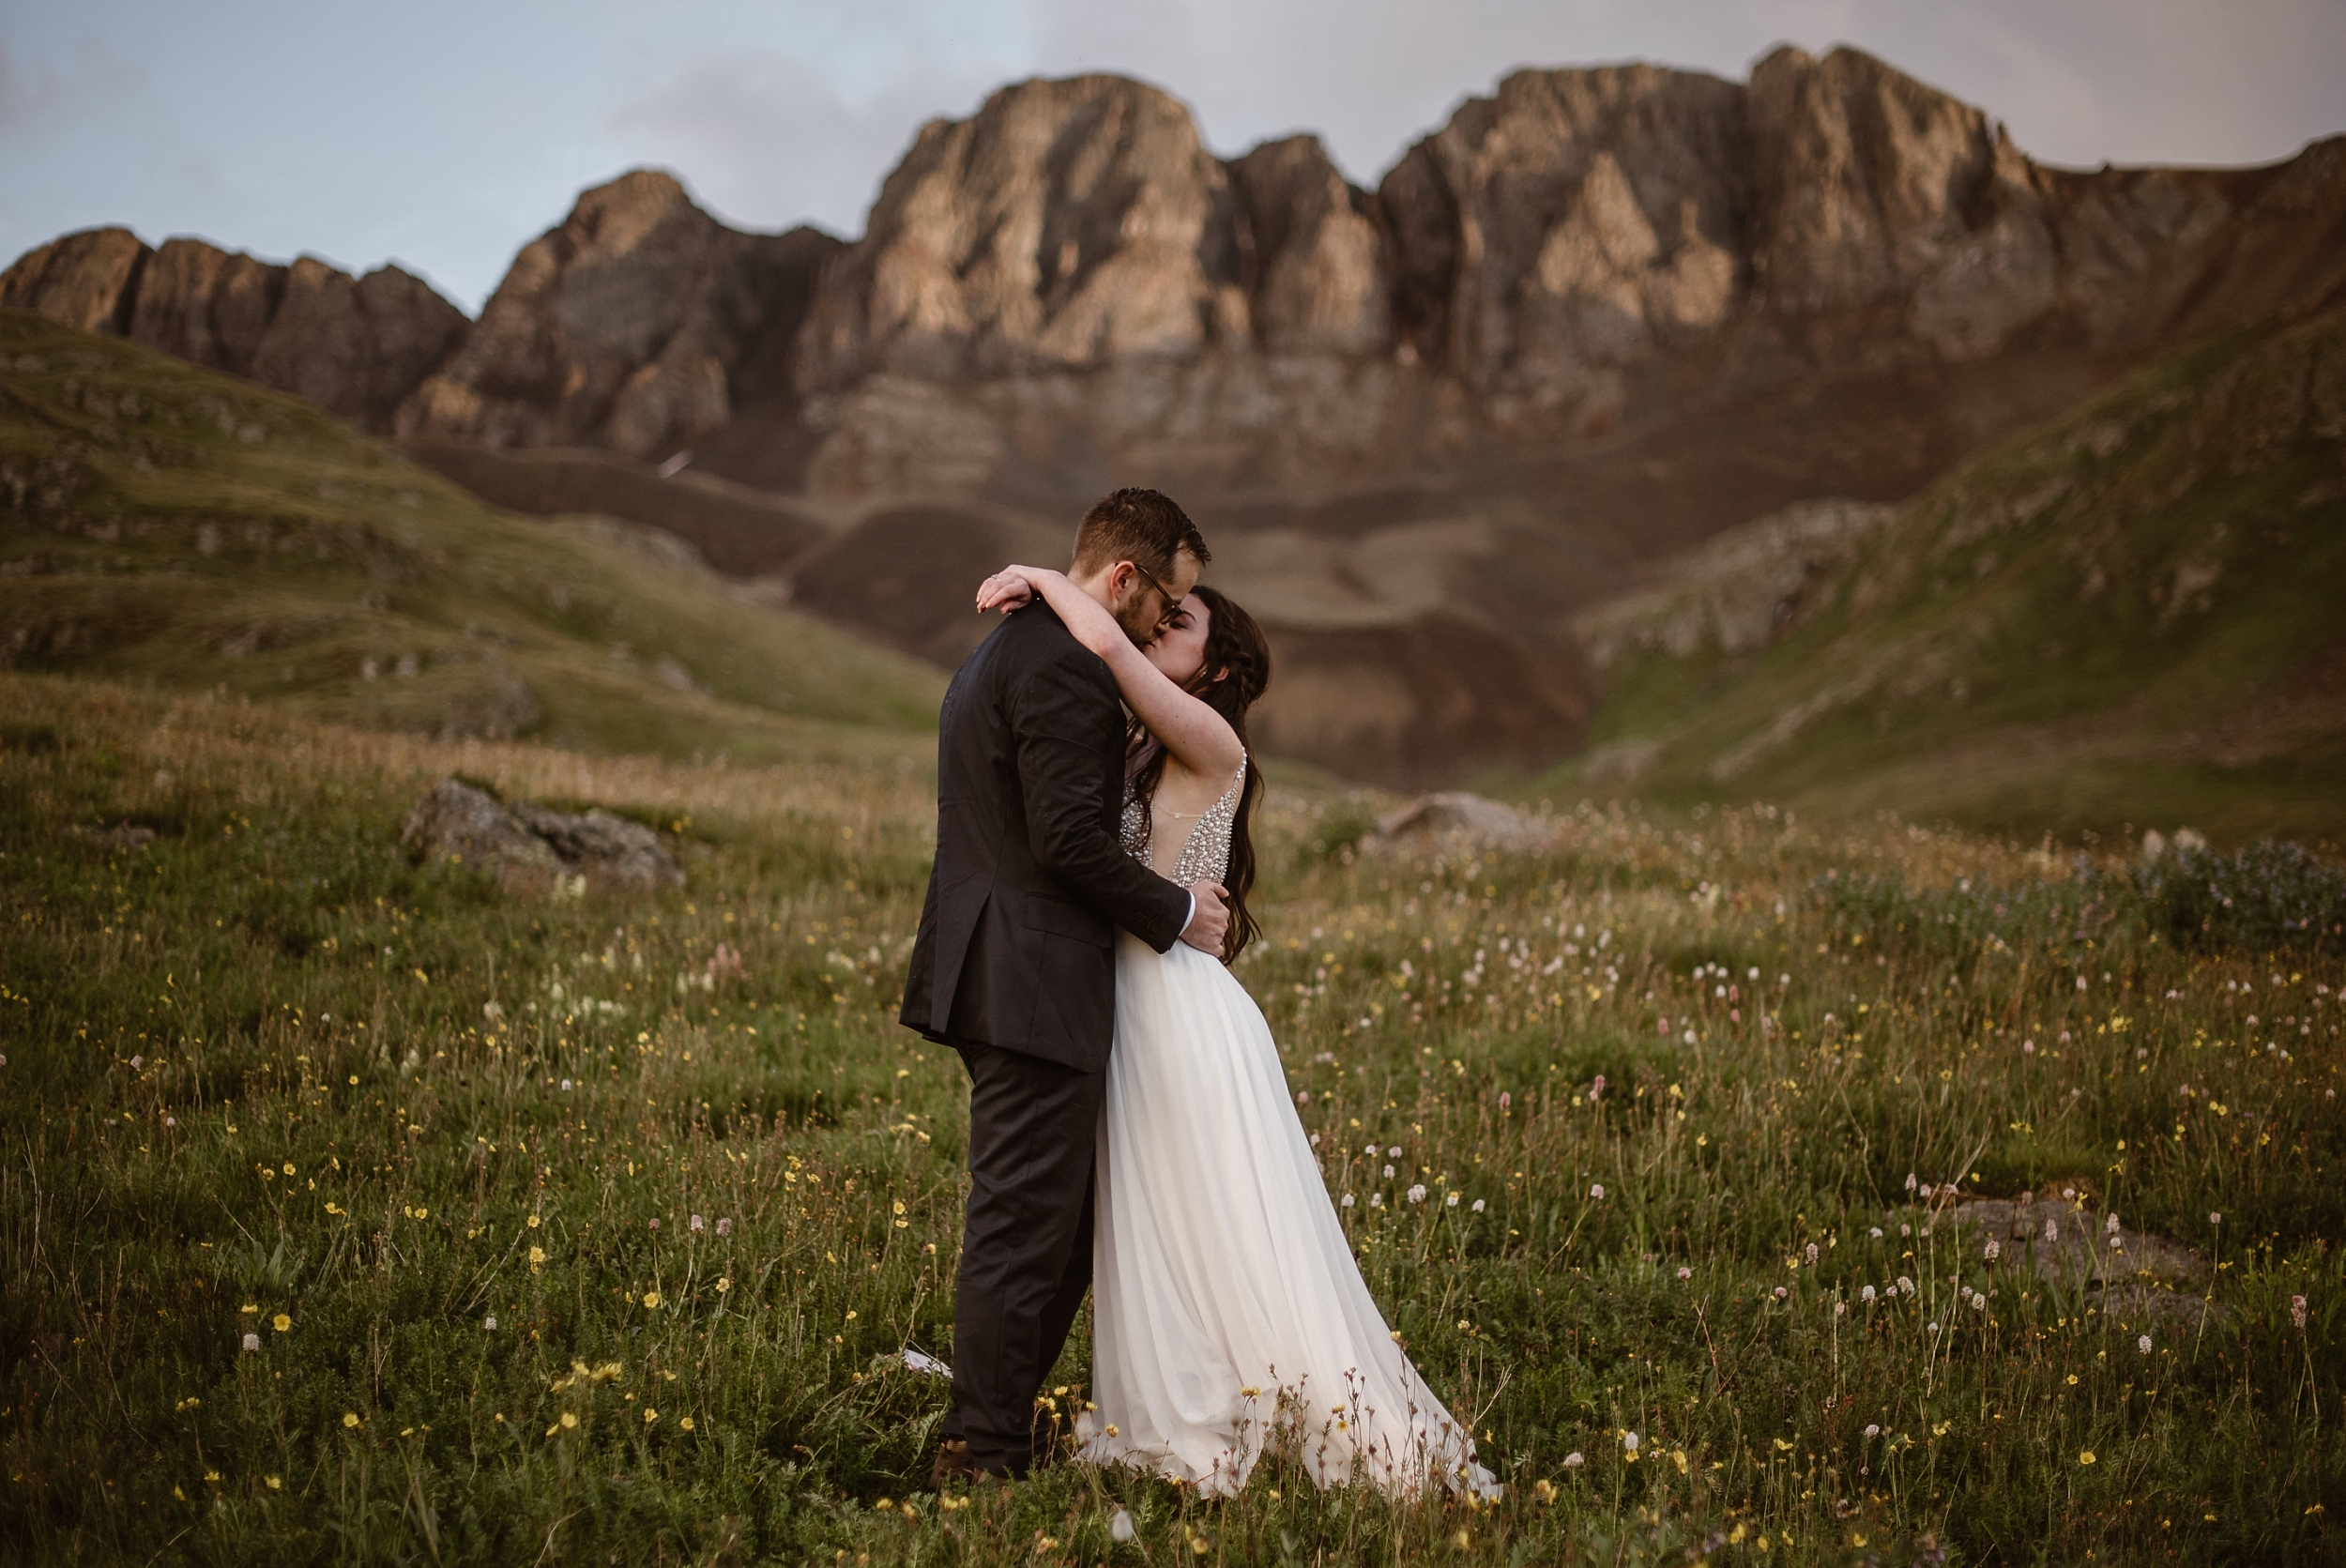 Katie and Logan embrace and kiss in a meadow in a mountain basin in Colorado. Wildflowers bloom all around them and sandy-colored mountains loom in the background. These elopement photos, captured by adventure photography company Adventure Instead, were one of the best elopement ideas that Katie and Logan had in mind for their 4x4 wedding on a Colorado mountain.